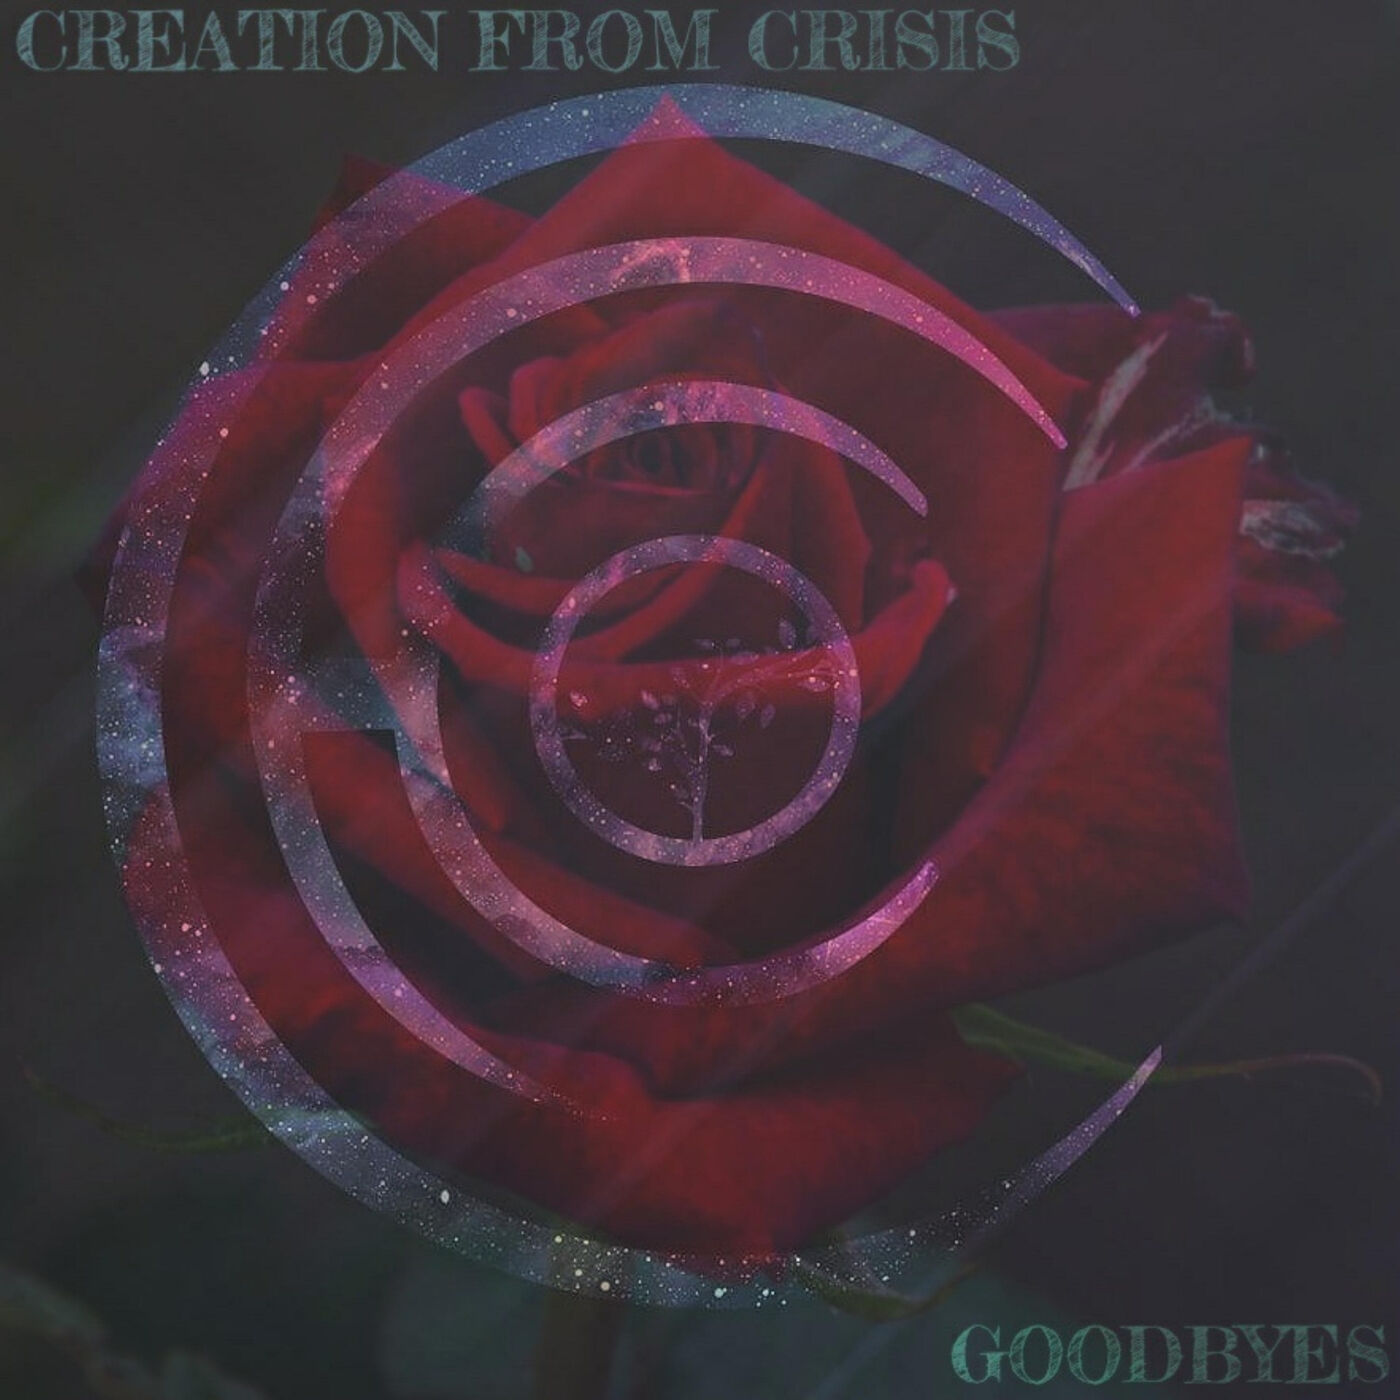 Creation from Crisis - Goodbyes (Post Malone cover) [single] (2020)